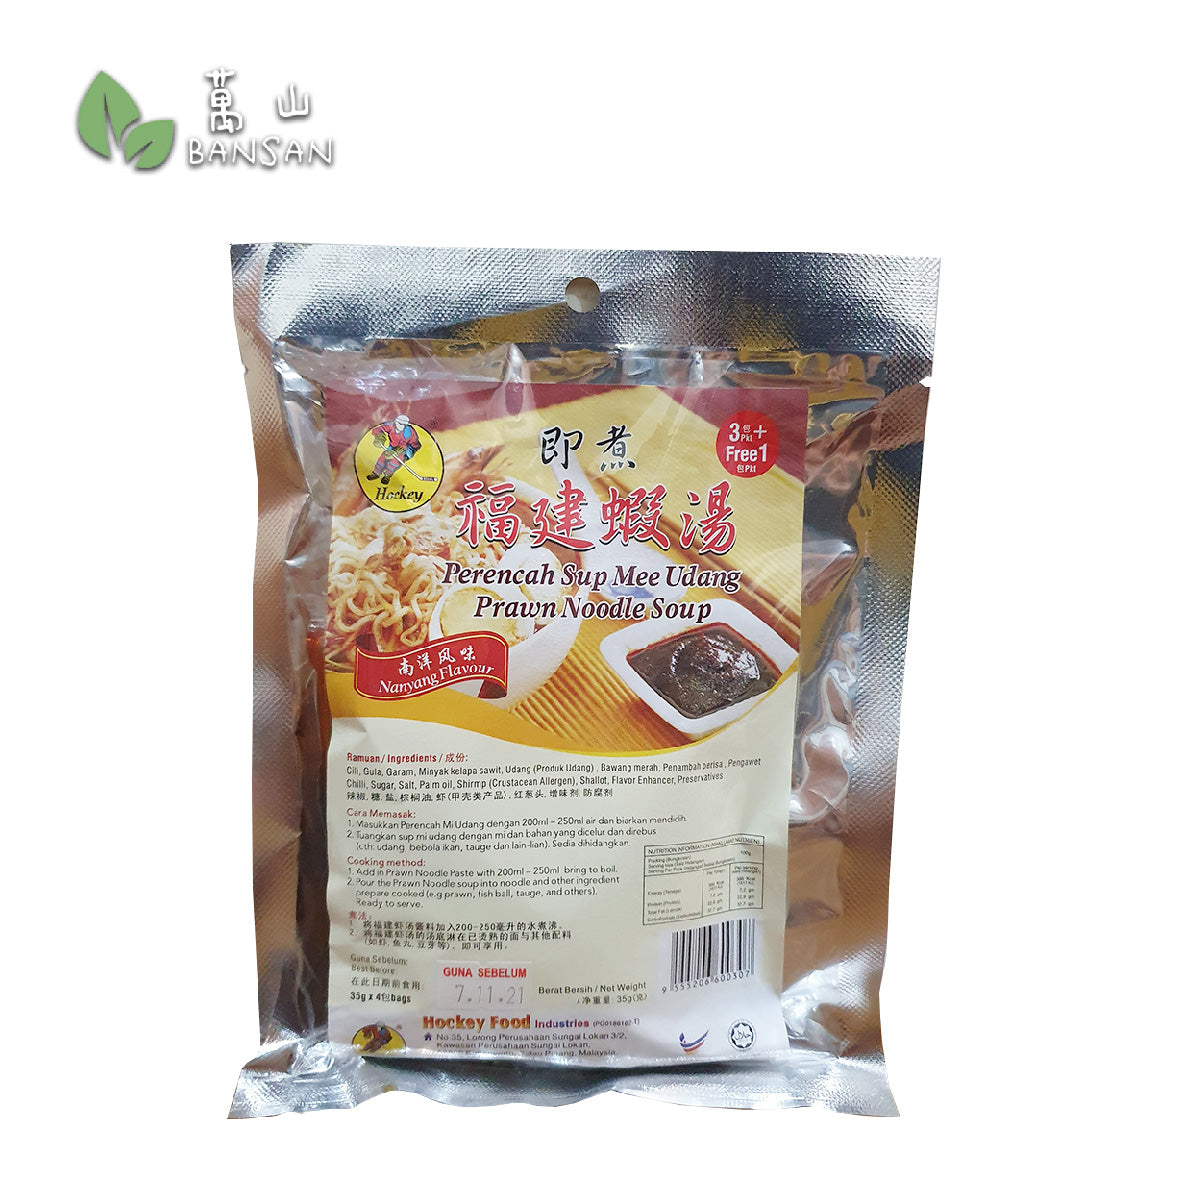 Hockey Instant Prawn Noodle Soup (1 pack) - Bansan Penang